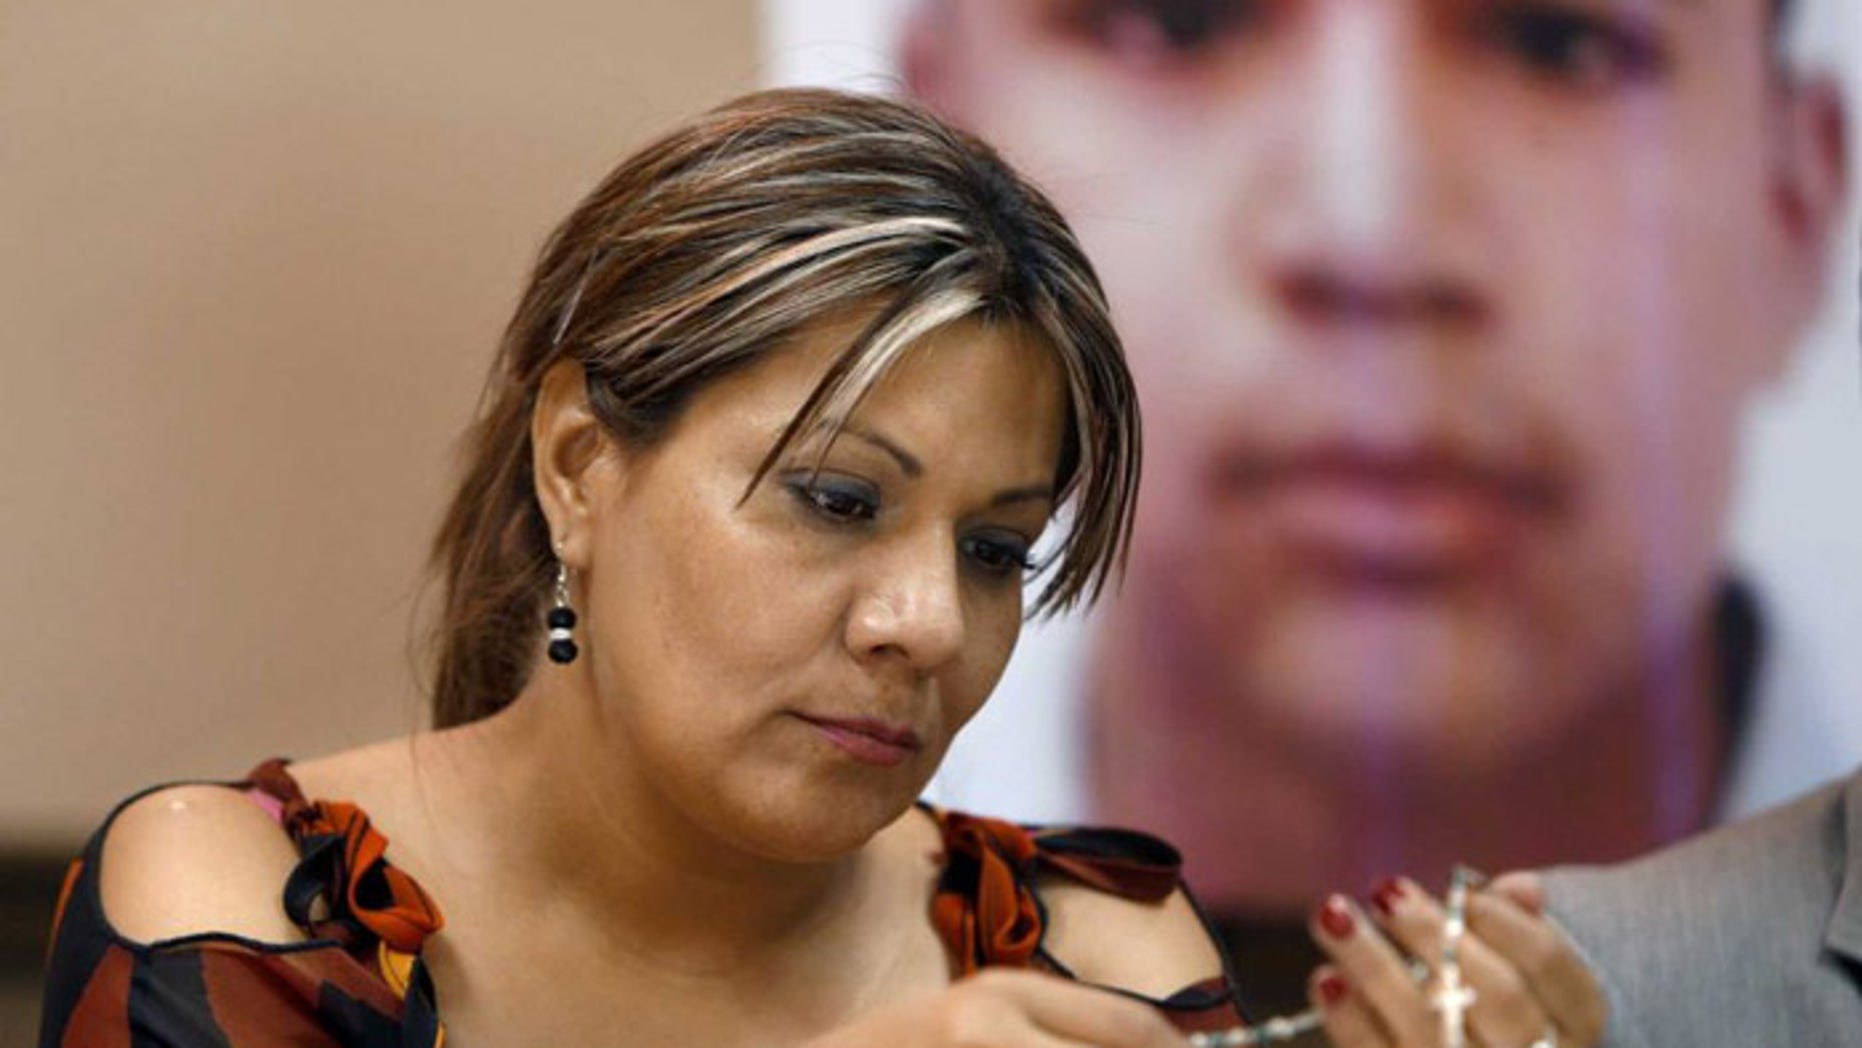 Araceli Rodriguez, whose son, son Jose Antonio Elena Rodriguez, pictured behind her, was shot and killed by U.S. Border Patrol agent in October 2012. (AP)